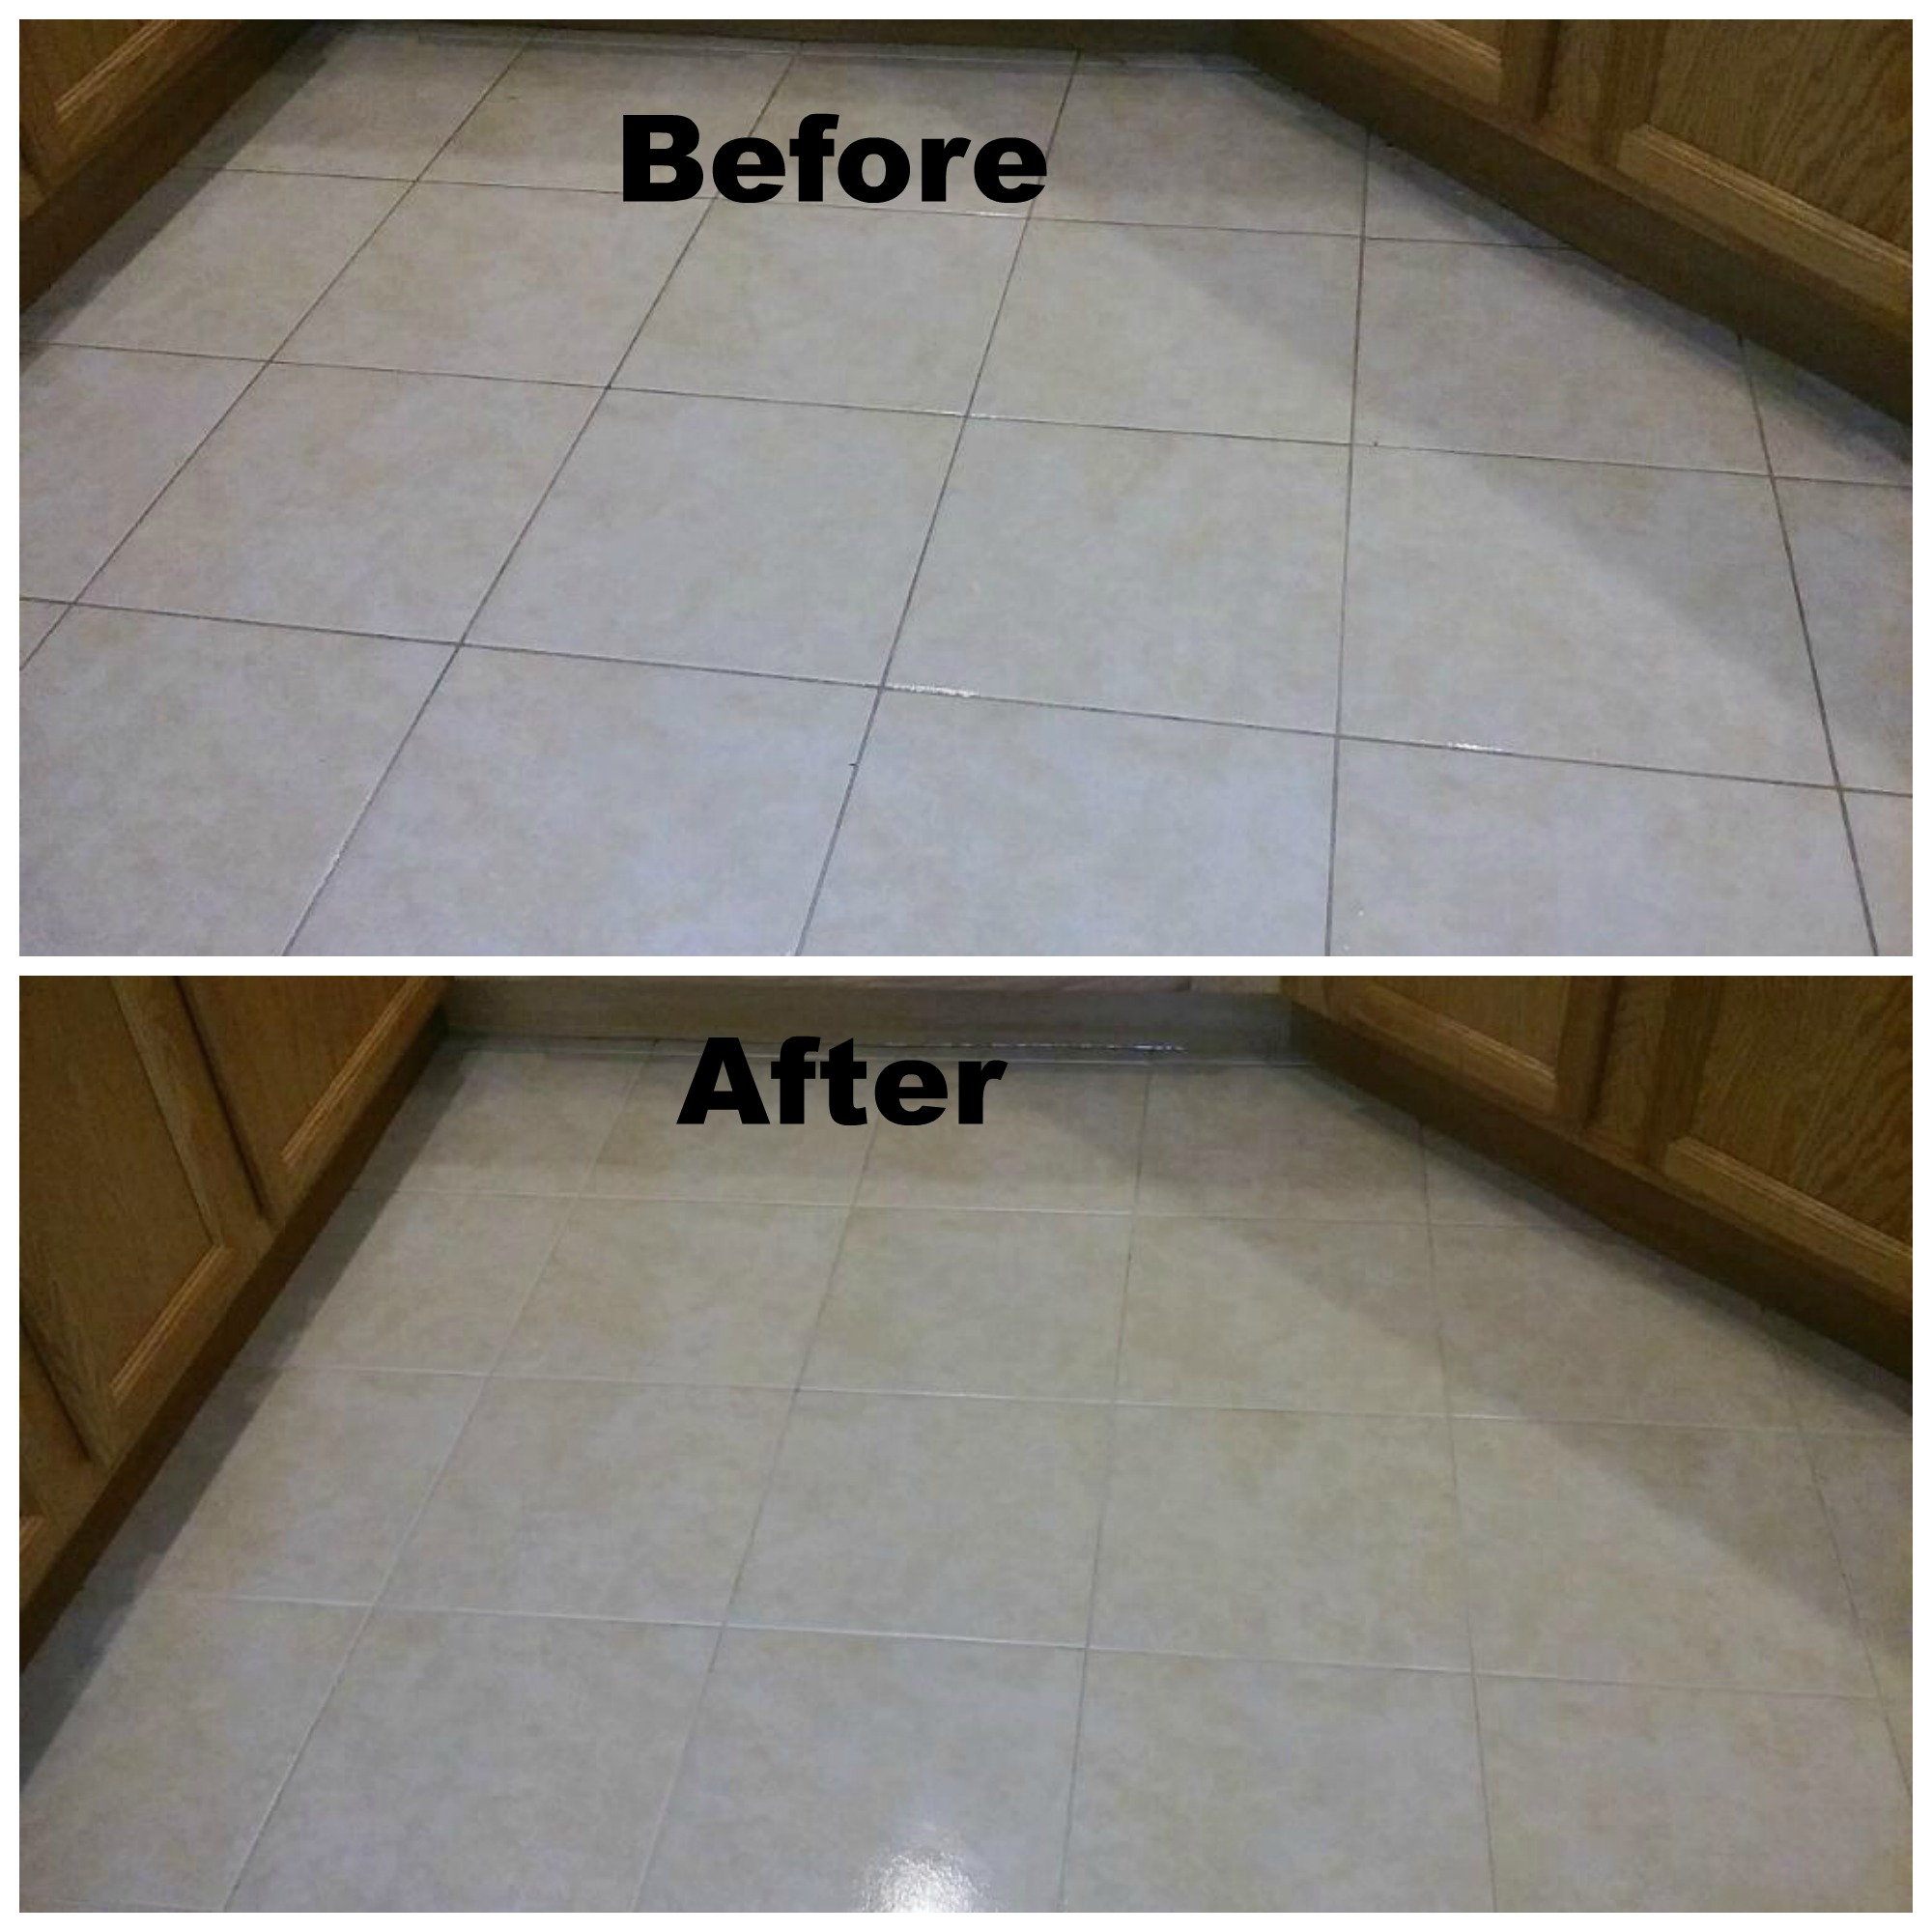 CCS Before and After Tile